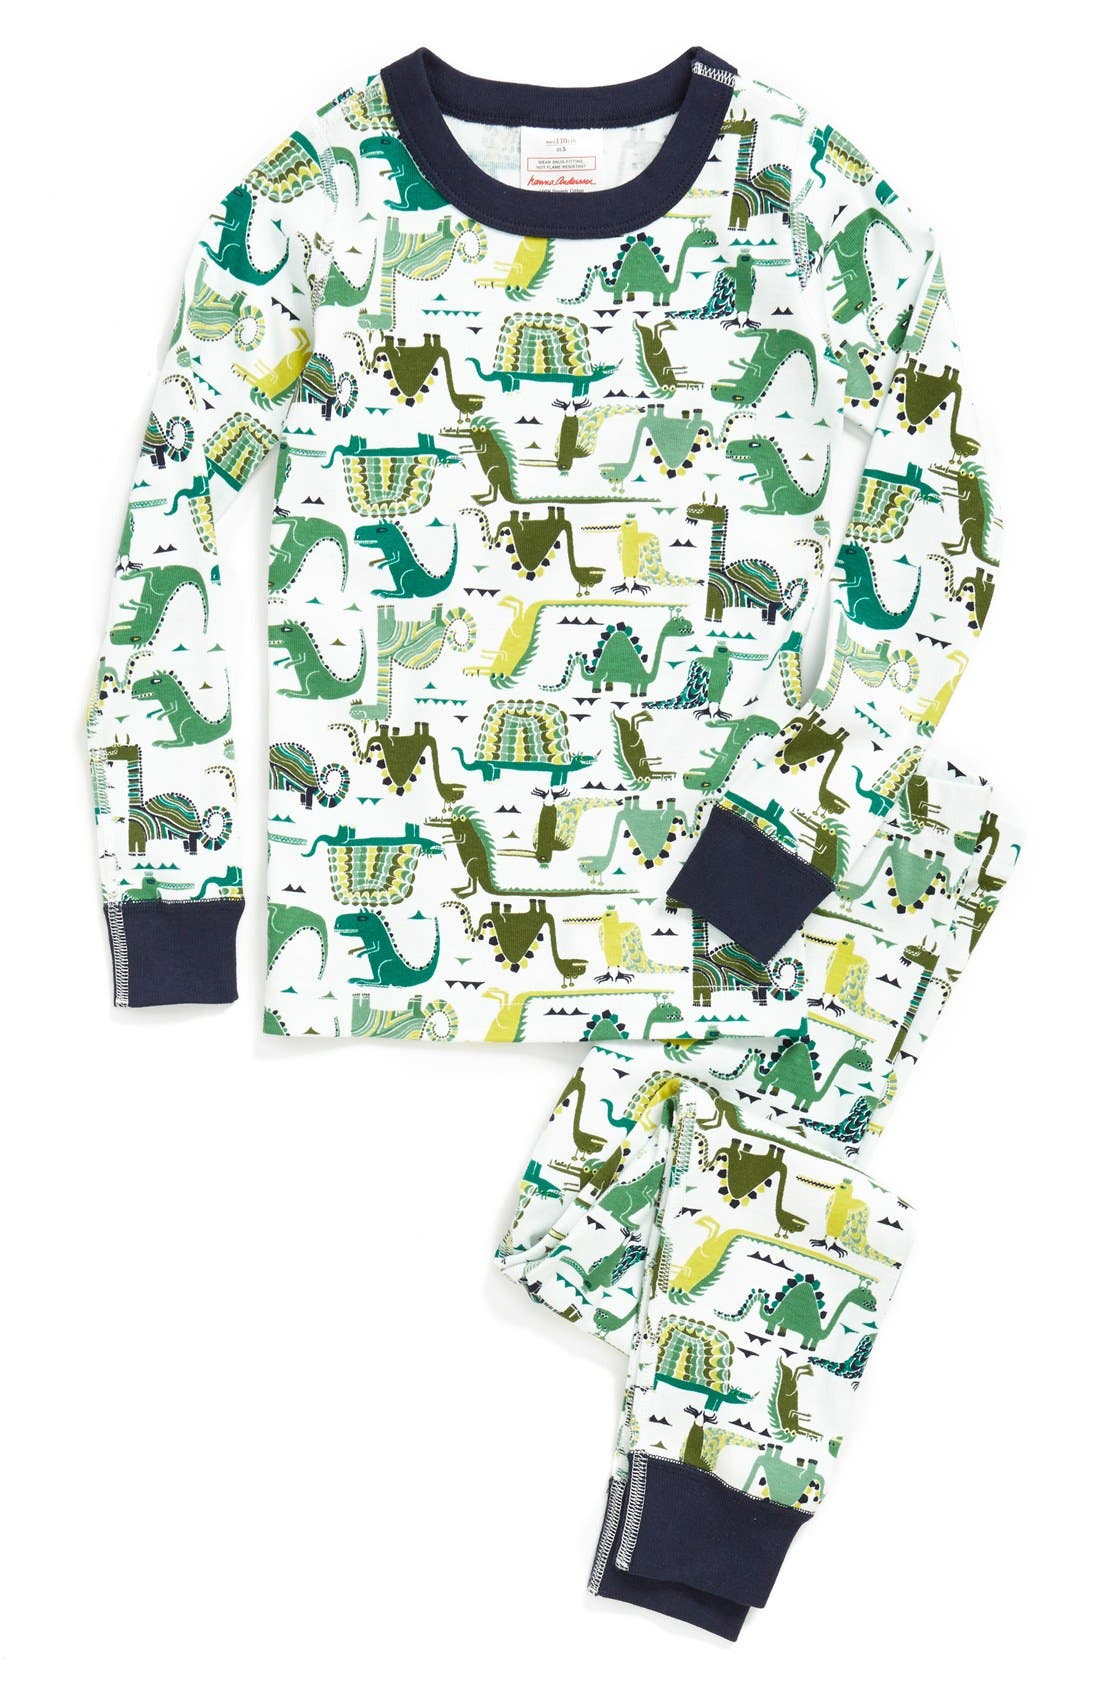 Alternate Image 1 Selected - Hanna Andersson 'Rockets' Fitted Long Johns (Toddler Boys, Little Boys & Big Boys)